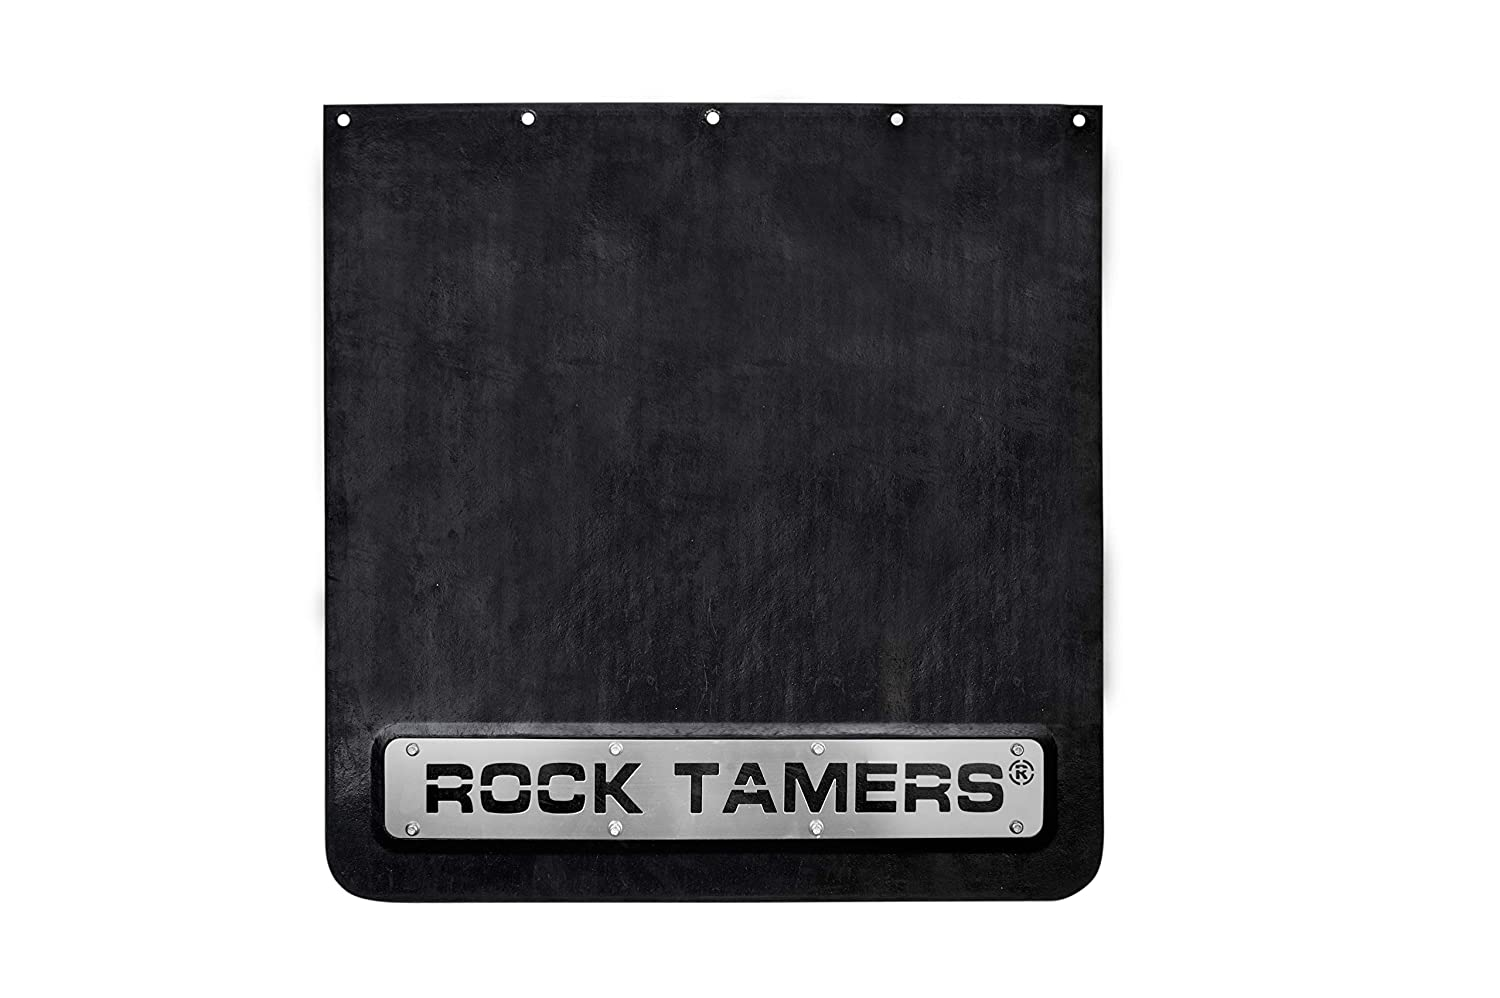 2.5 Hub Mudflap System with Matte Black Stainless Steel Trim Plates 00110 ROCK TAMERS